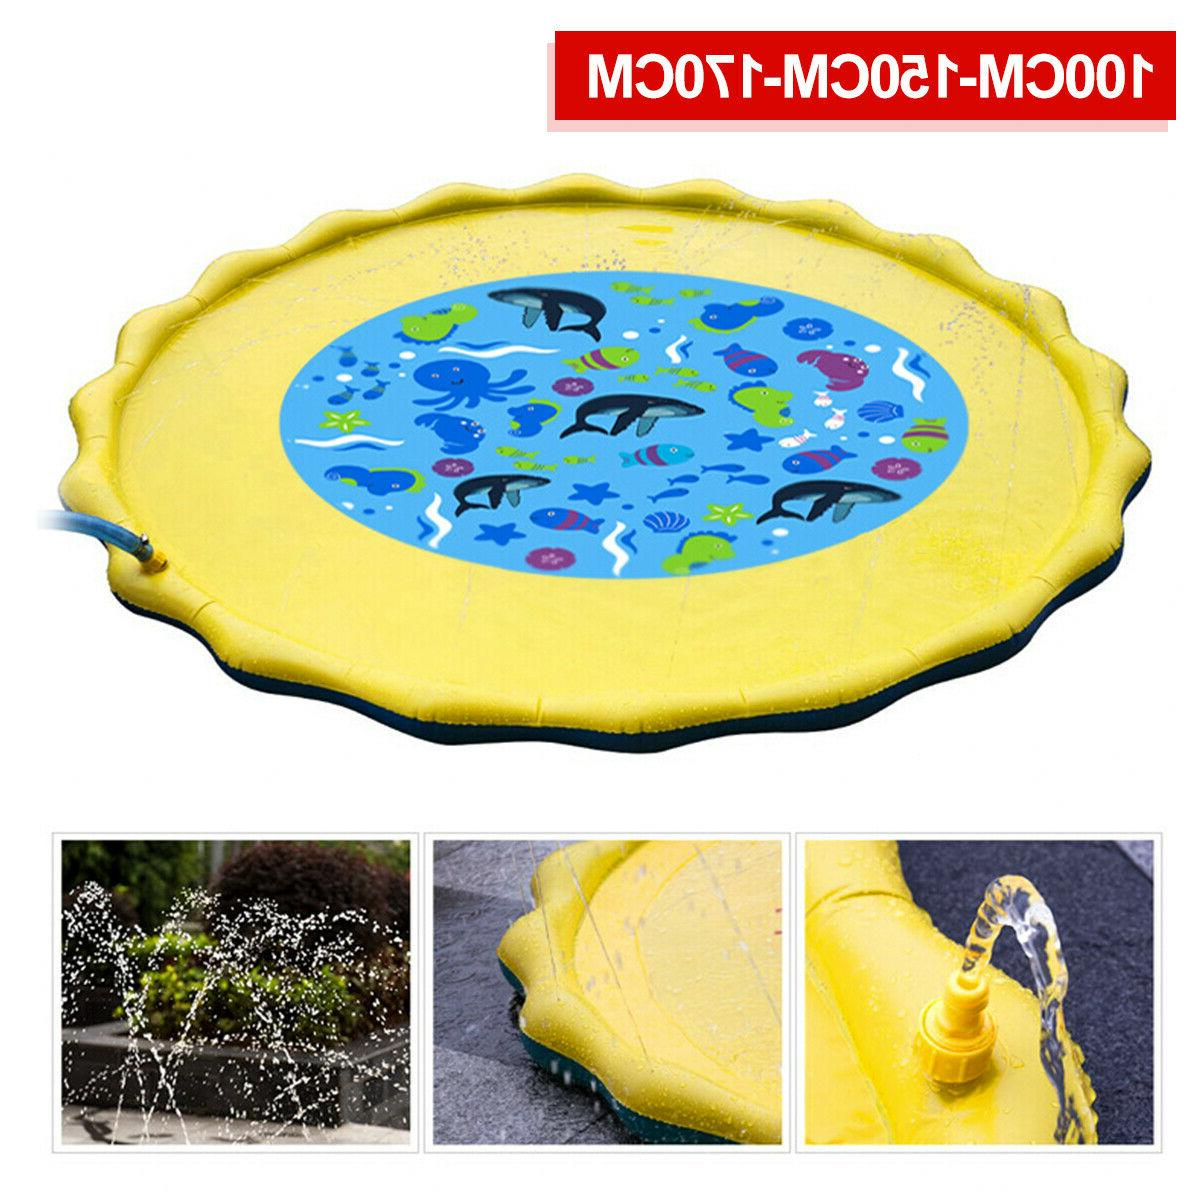 Inflatable Water Mat Kids Outdoor Pool Beach Lawn Toy